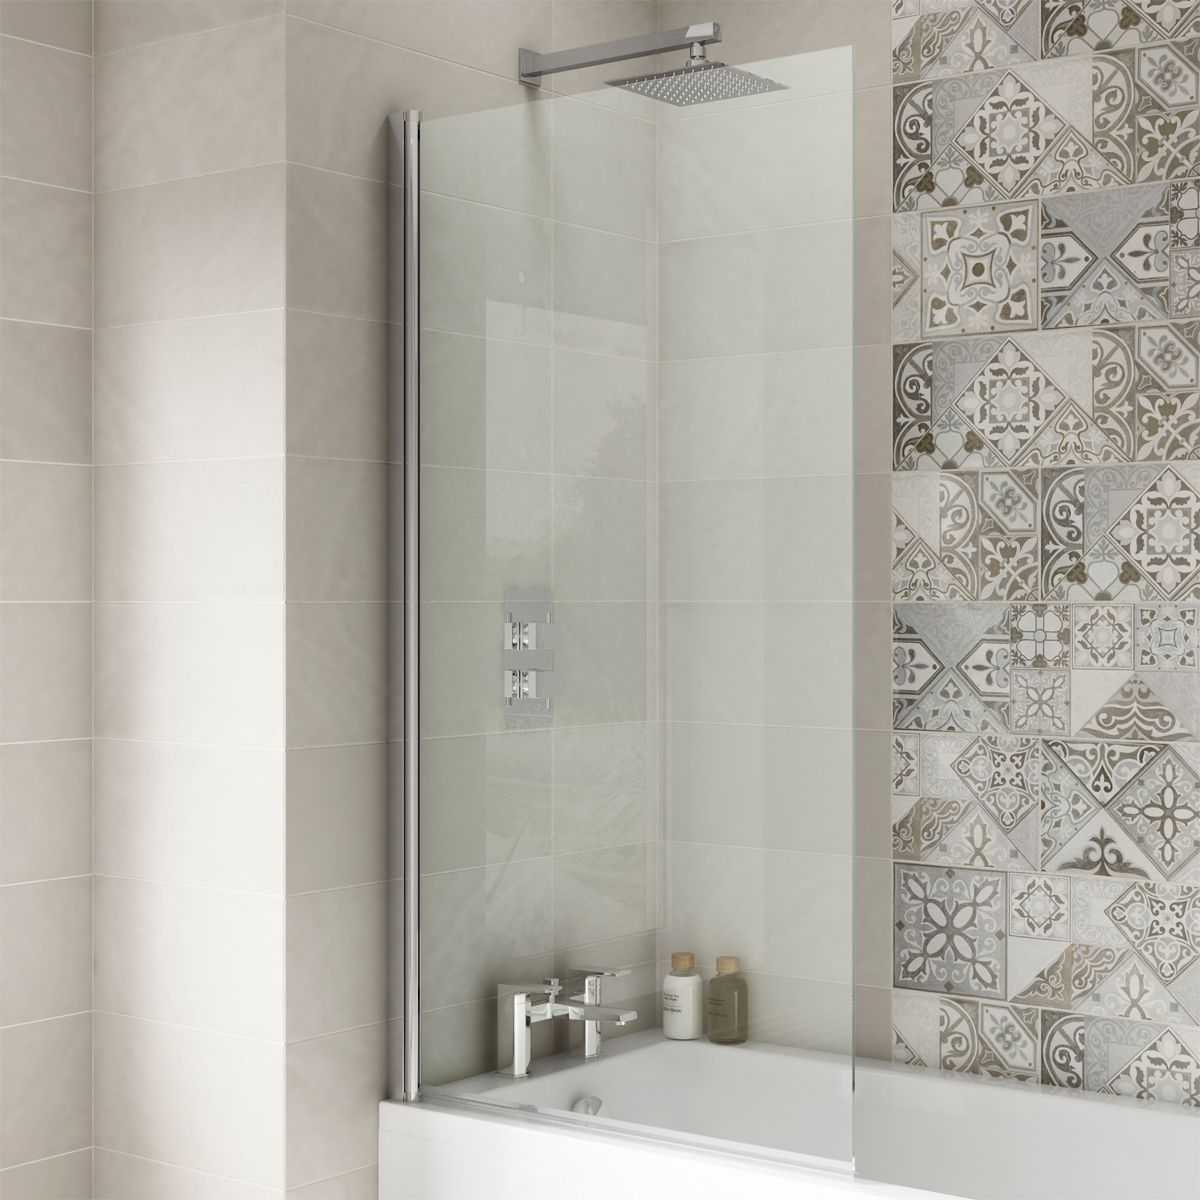 Premier Straight Square Edge Bath Screen